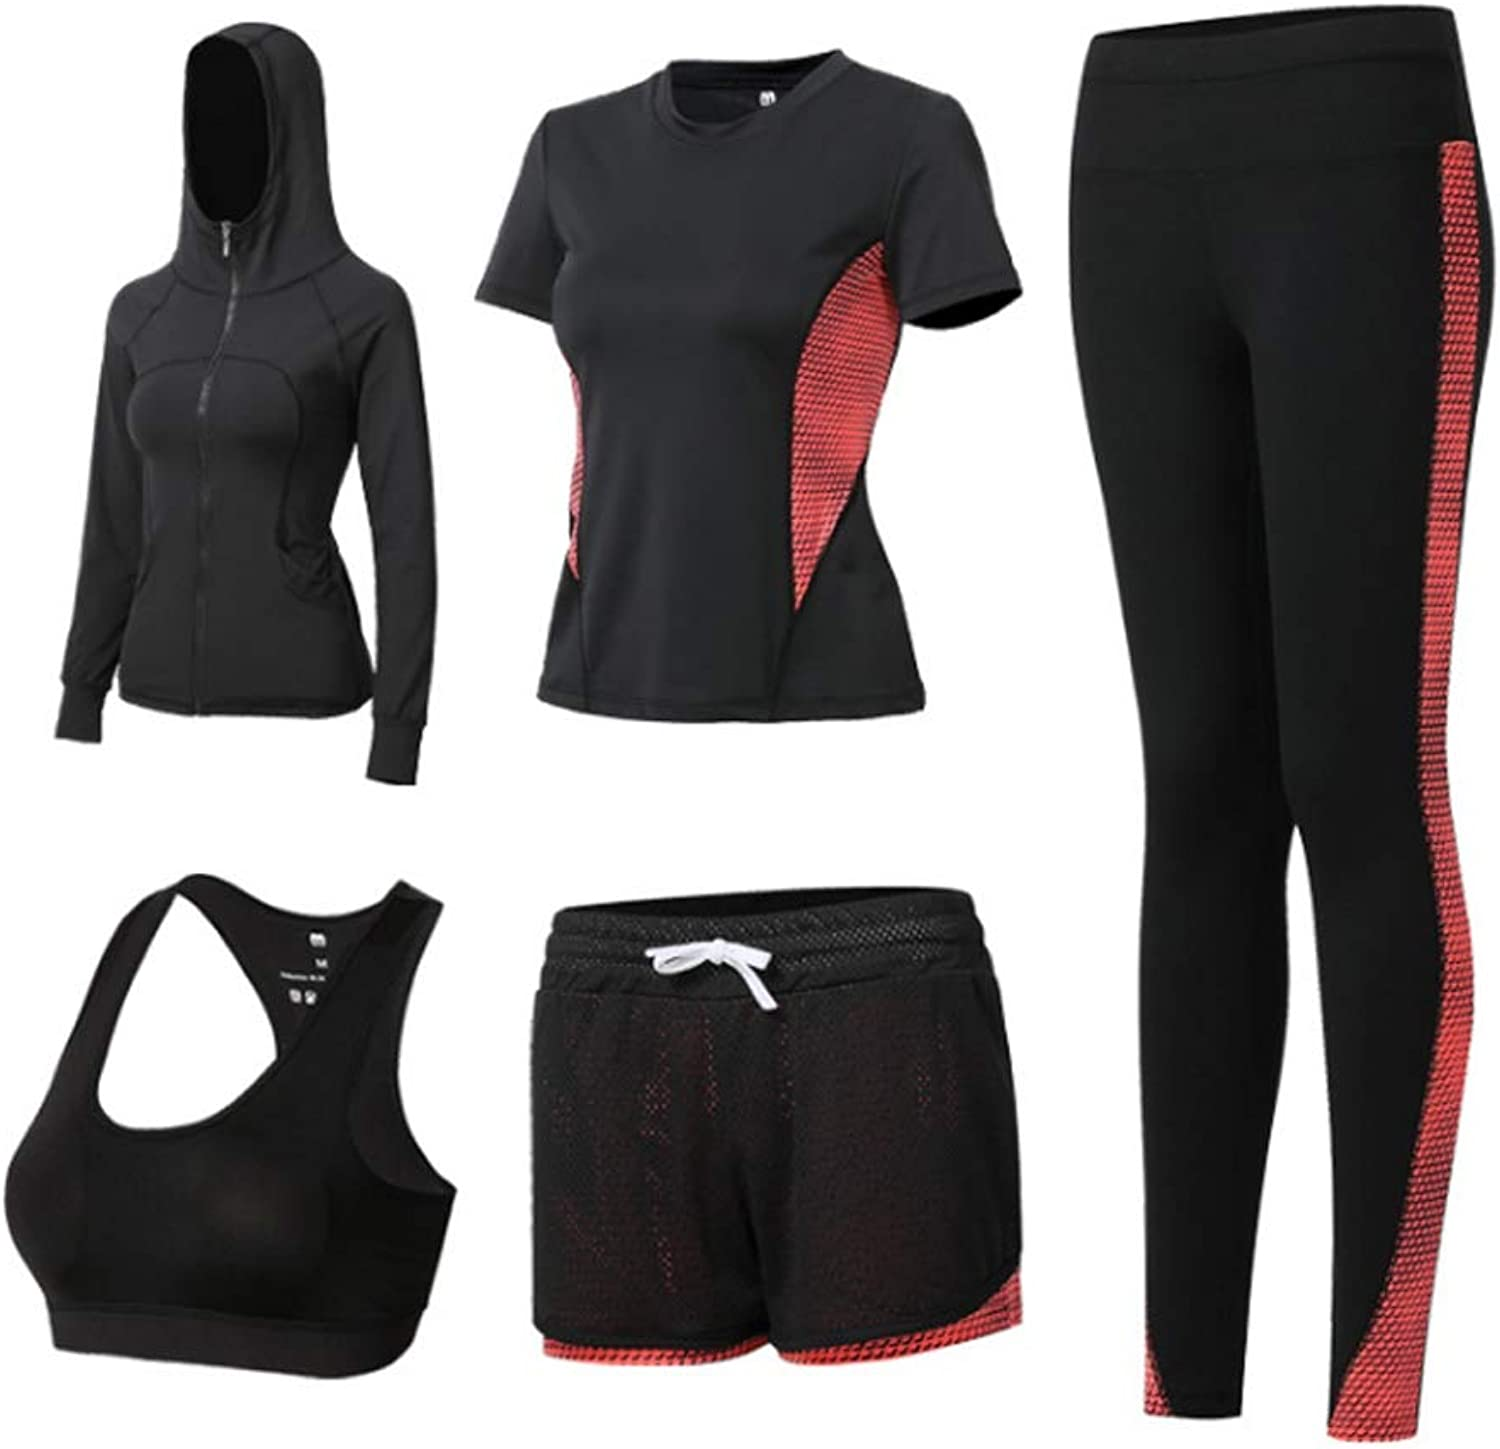 Women's Sports Bra Suit Sports Fitness Running Yoga Clothes Training Clothes Gym Sportswear Stretch Pants FivePiece